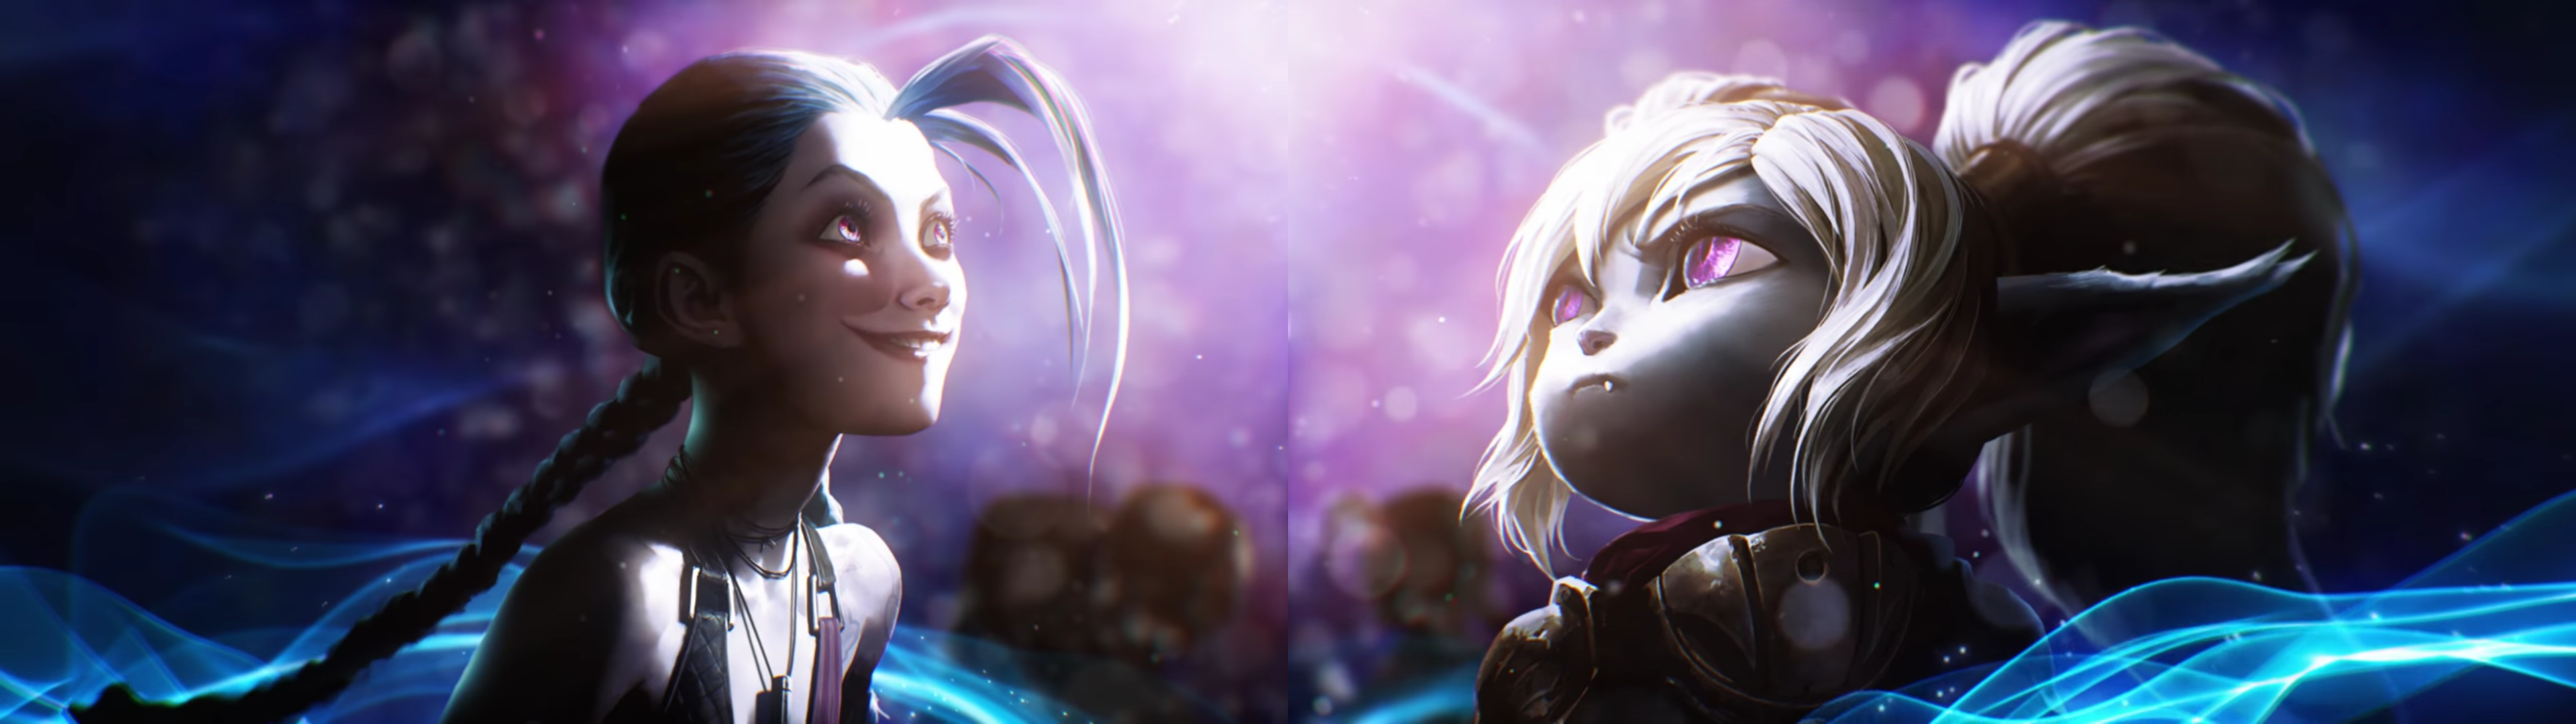 Dual Screen Wallpaper 3840x1080 From 979787 Png